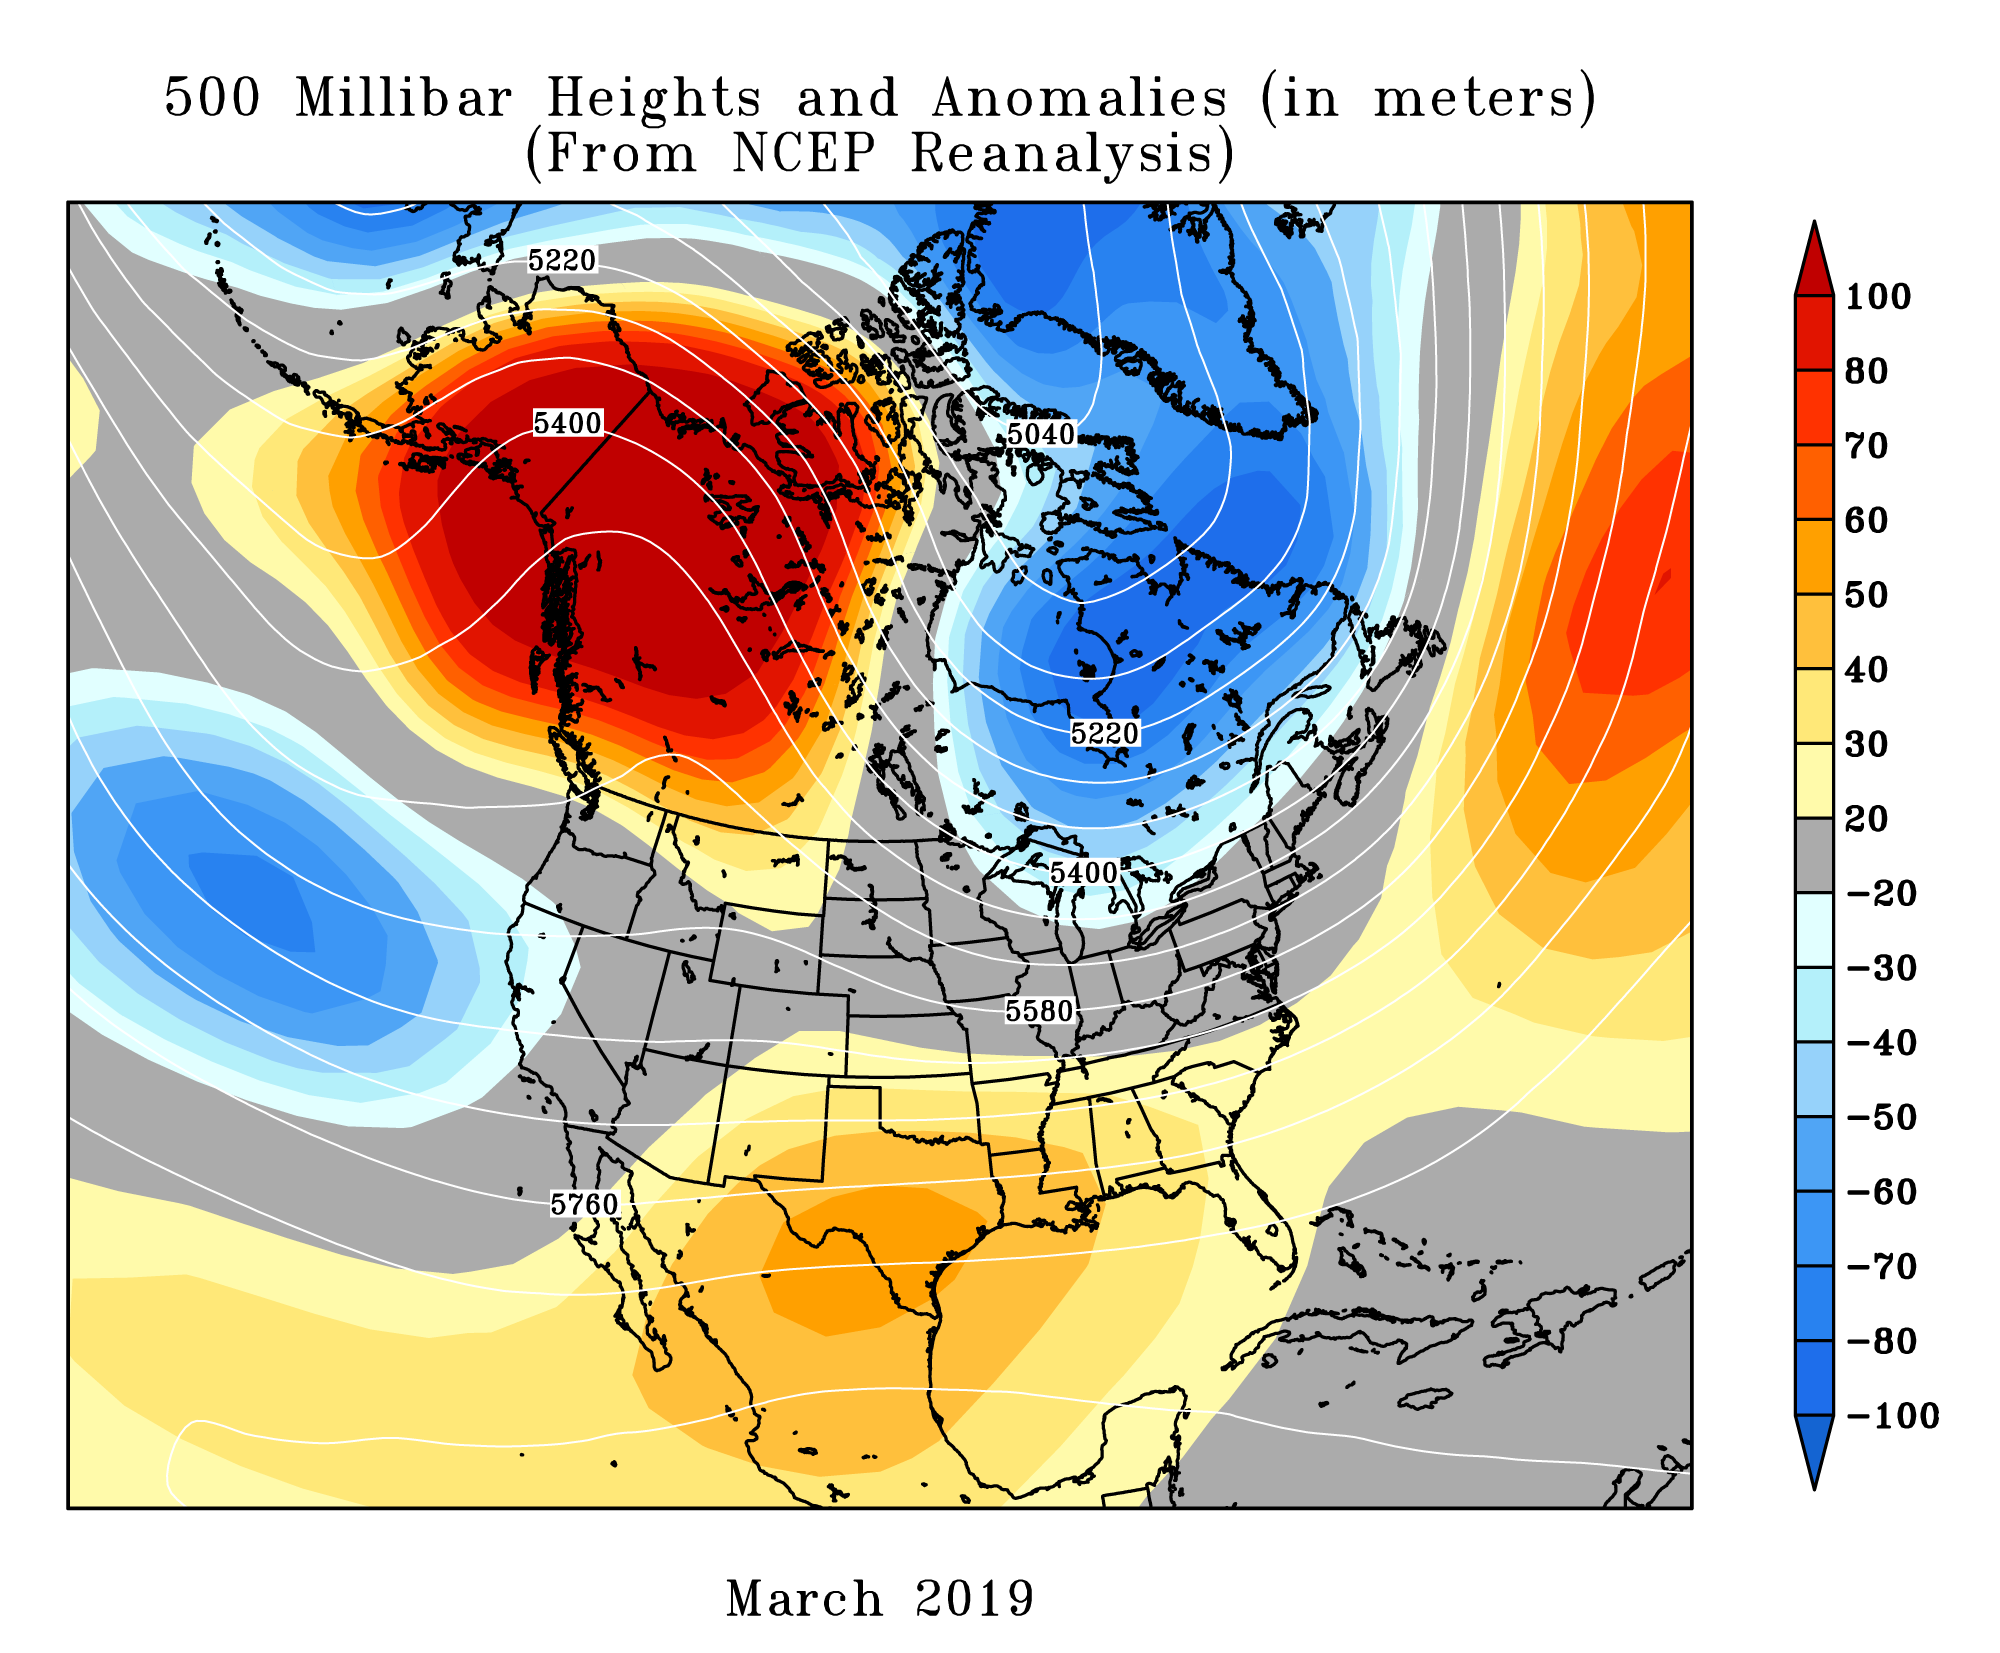 North America monthly upper-level circulation pattern and anomalies